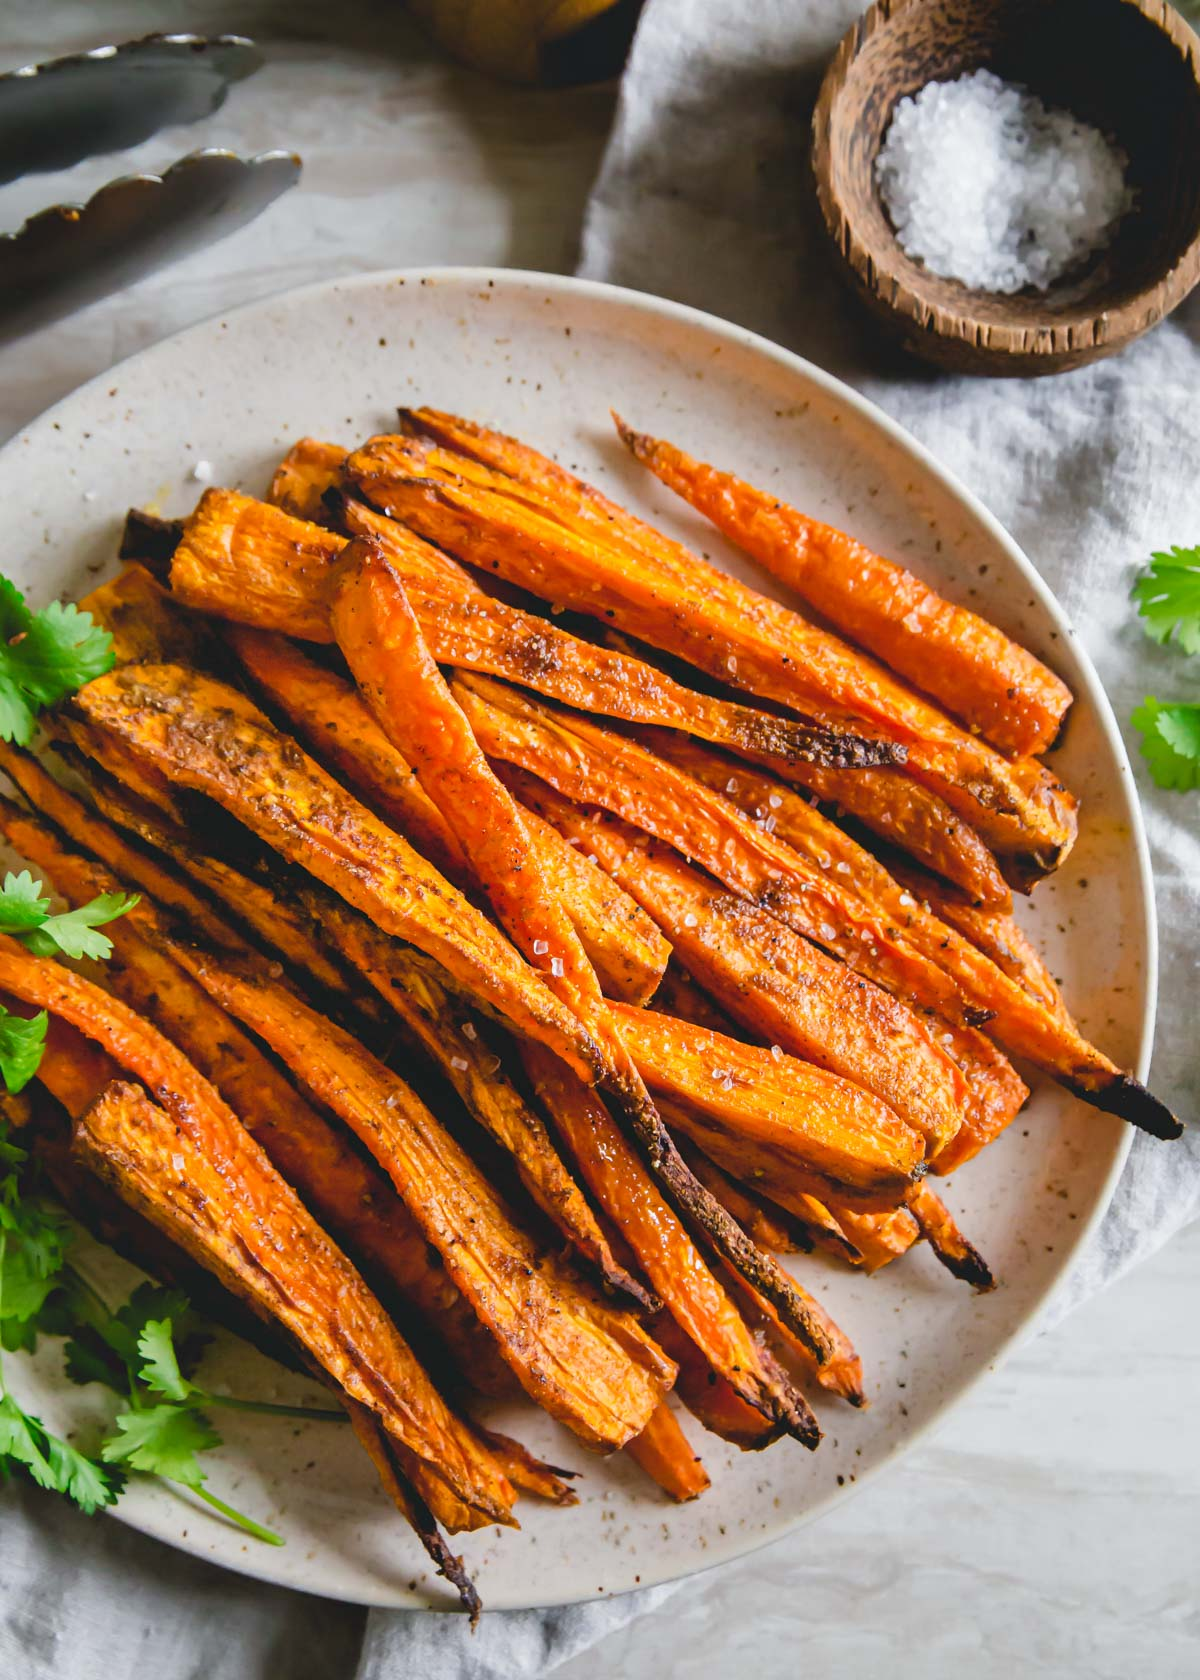 Tender savory spiced air fryer carrots with crispy edges is a simple side dish perfect for any meal made in just 20 minutes.